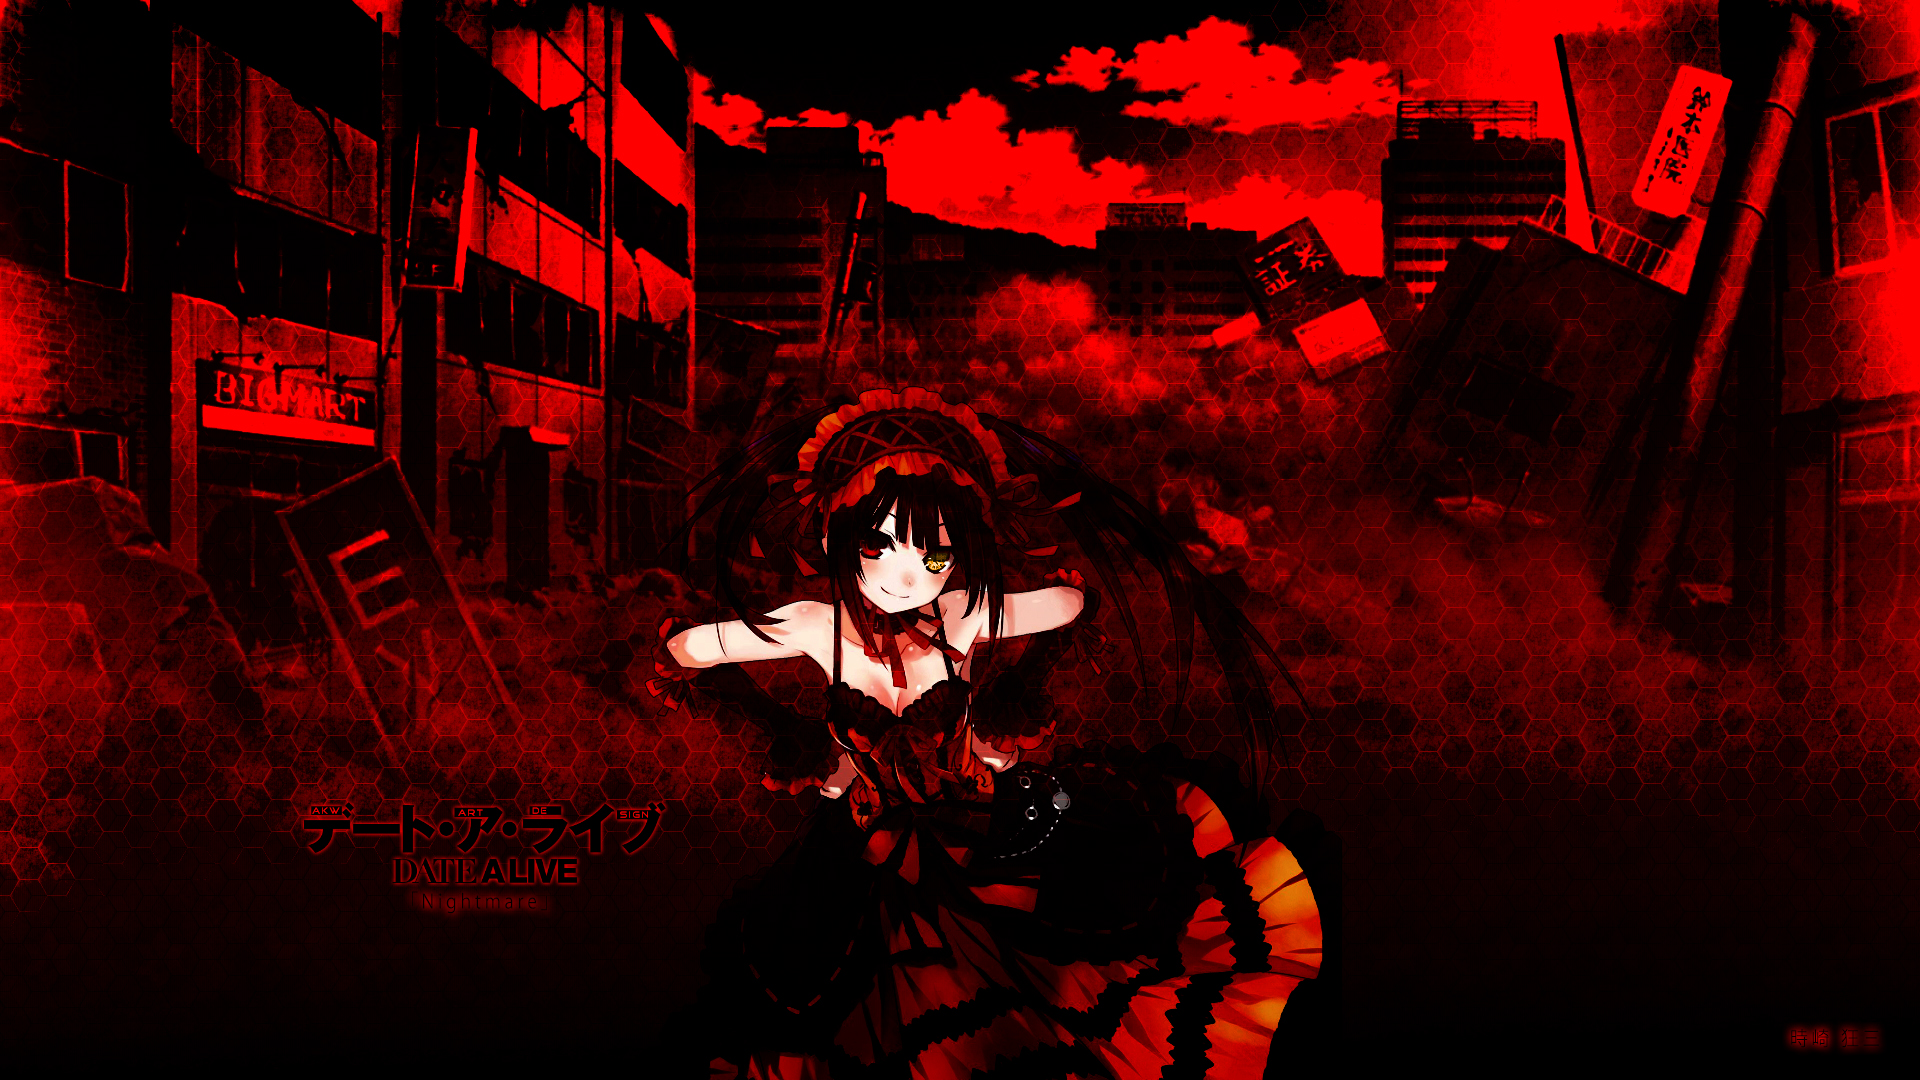 Animehead Brothers Wolfe Date A Live